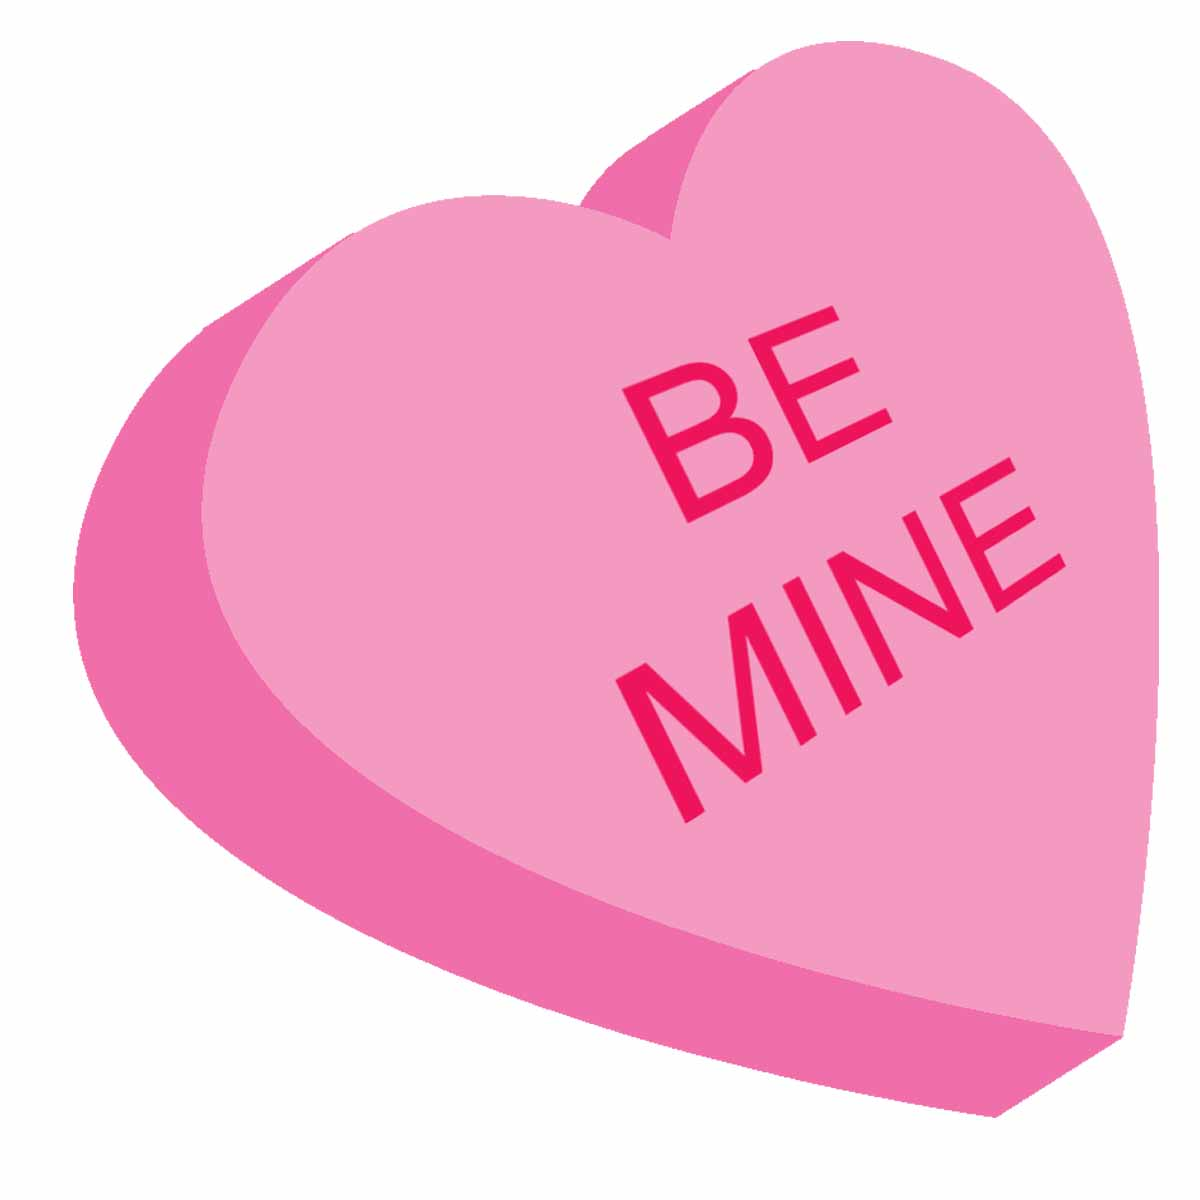 Valentine clipart bag. Free candy pictures download